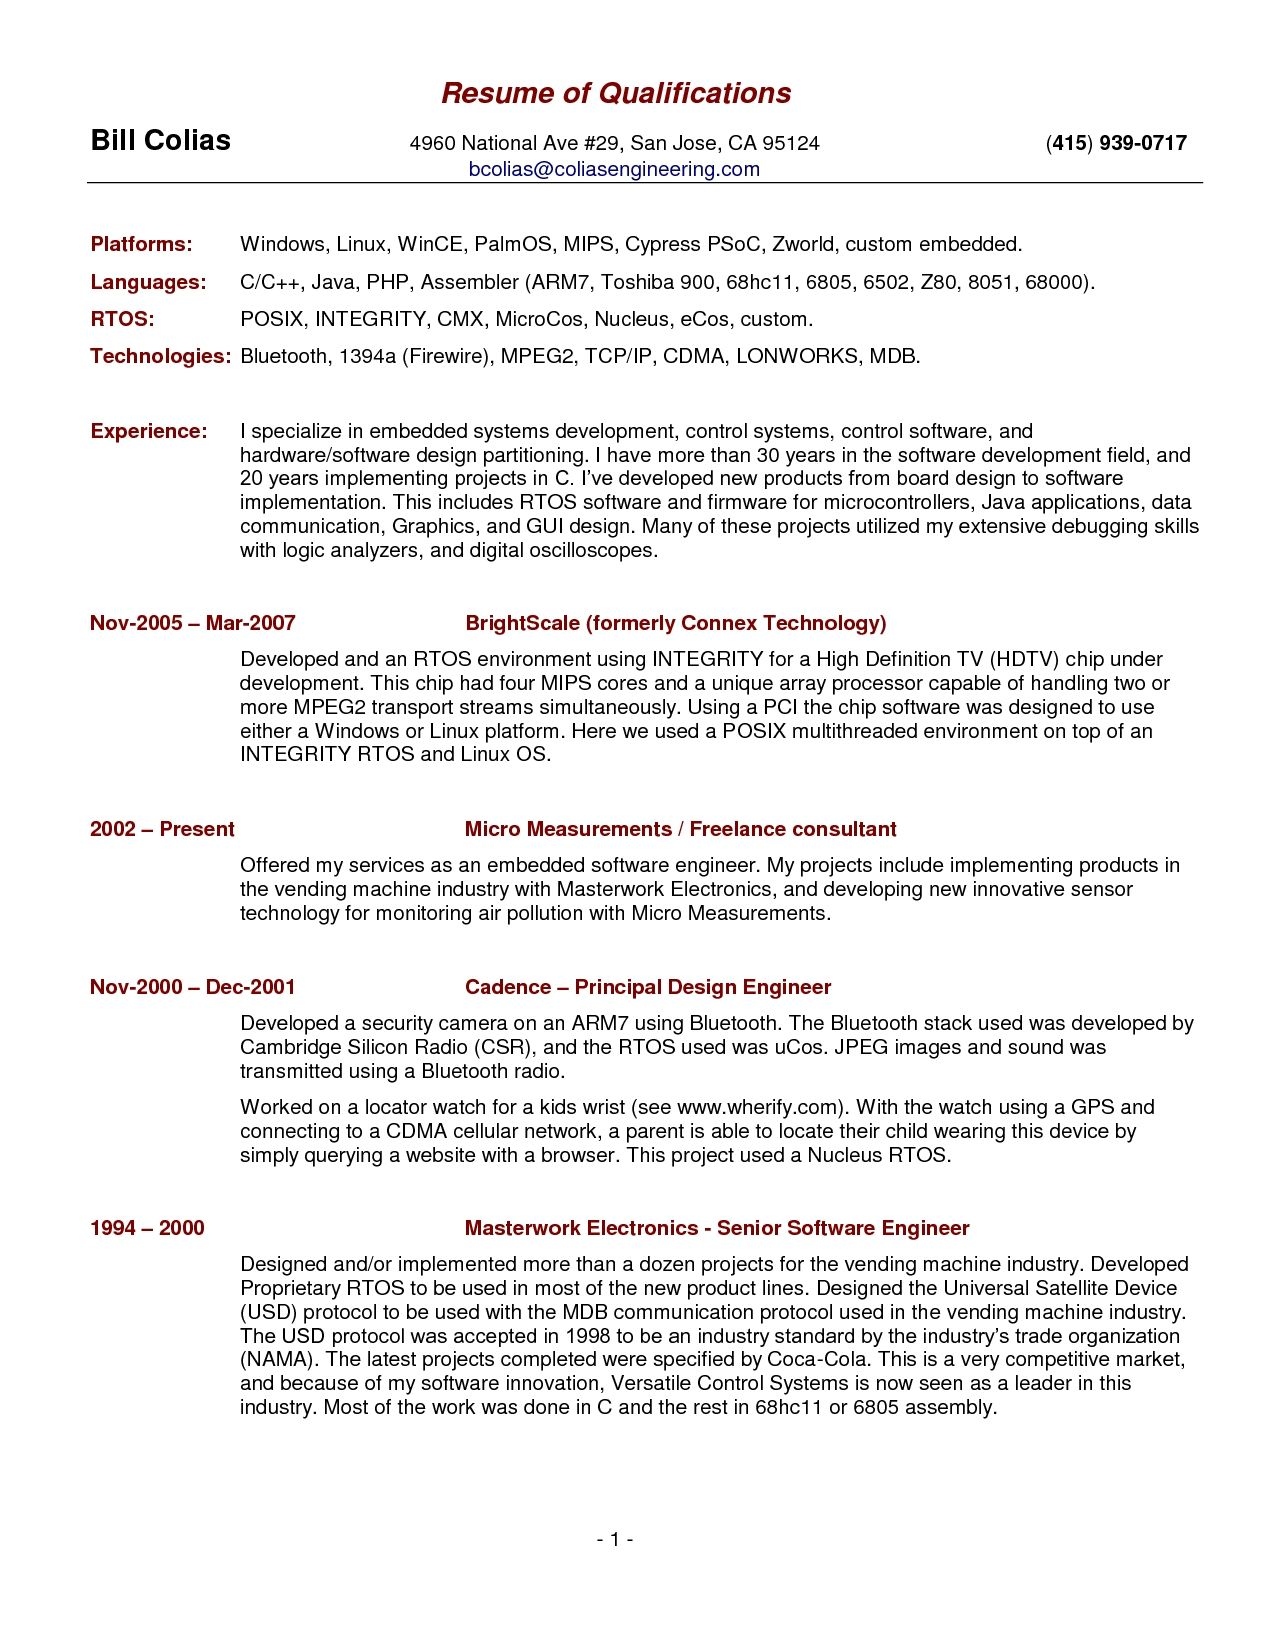 Qualifications For A Resume Examples 7f8ea3a2a New Resume Skills – Resume Skills Example